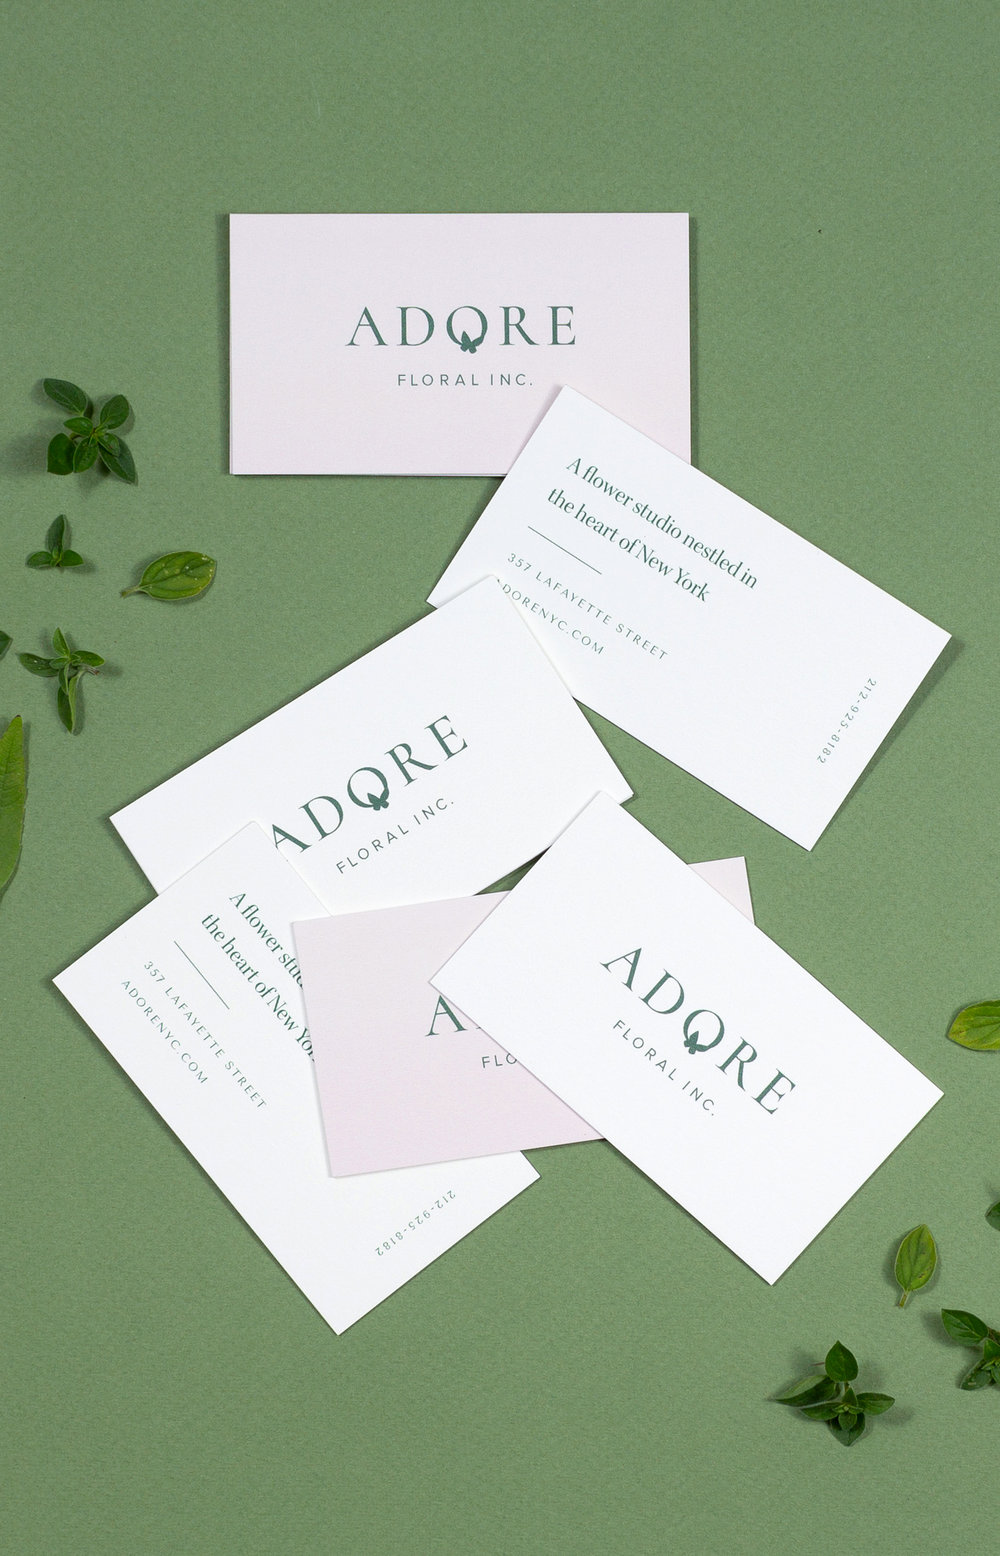 Adore Floral brand identity by Shoppe Theory. Photograph by Anna Wu.